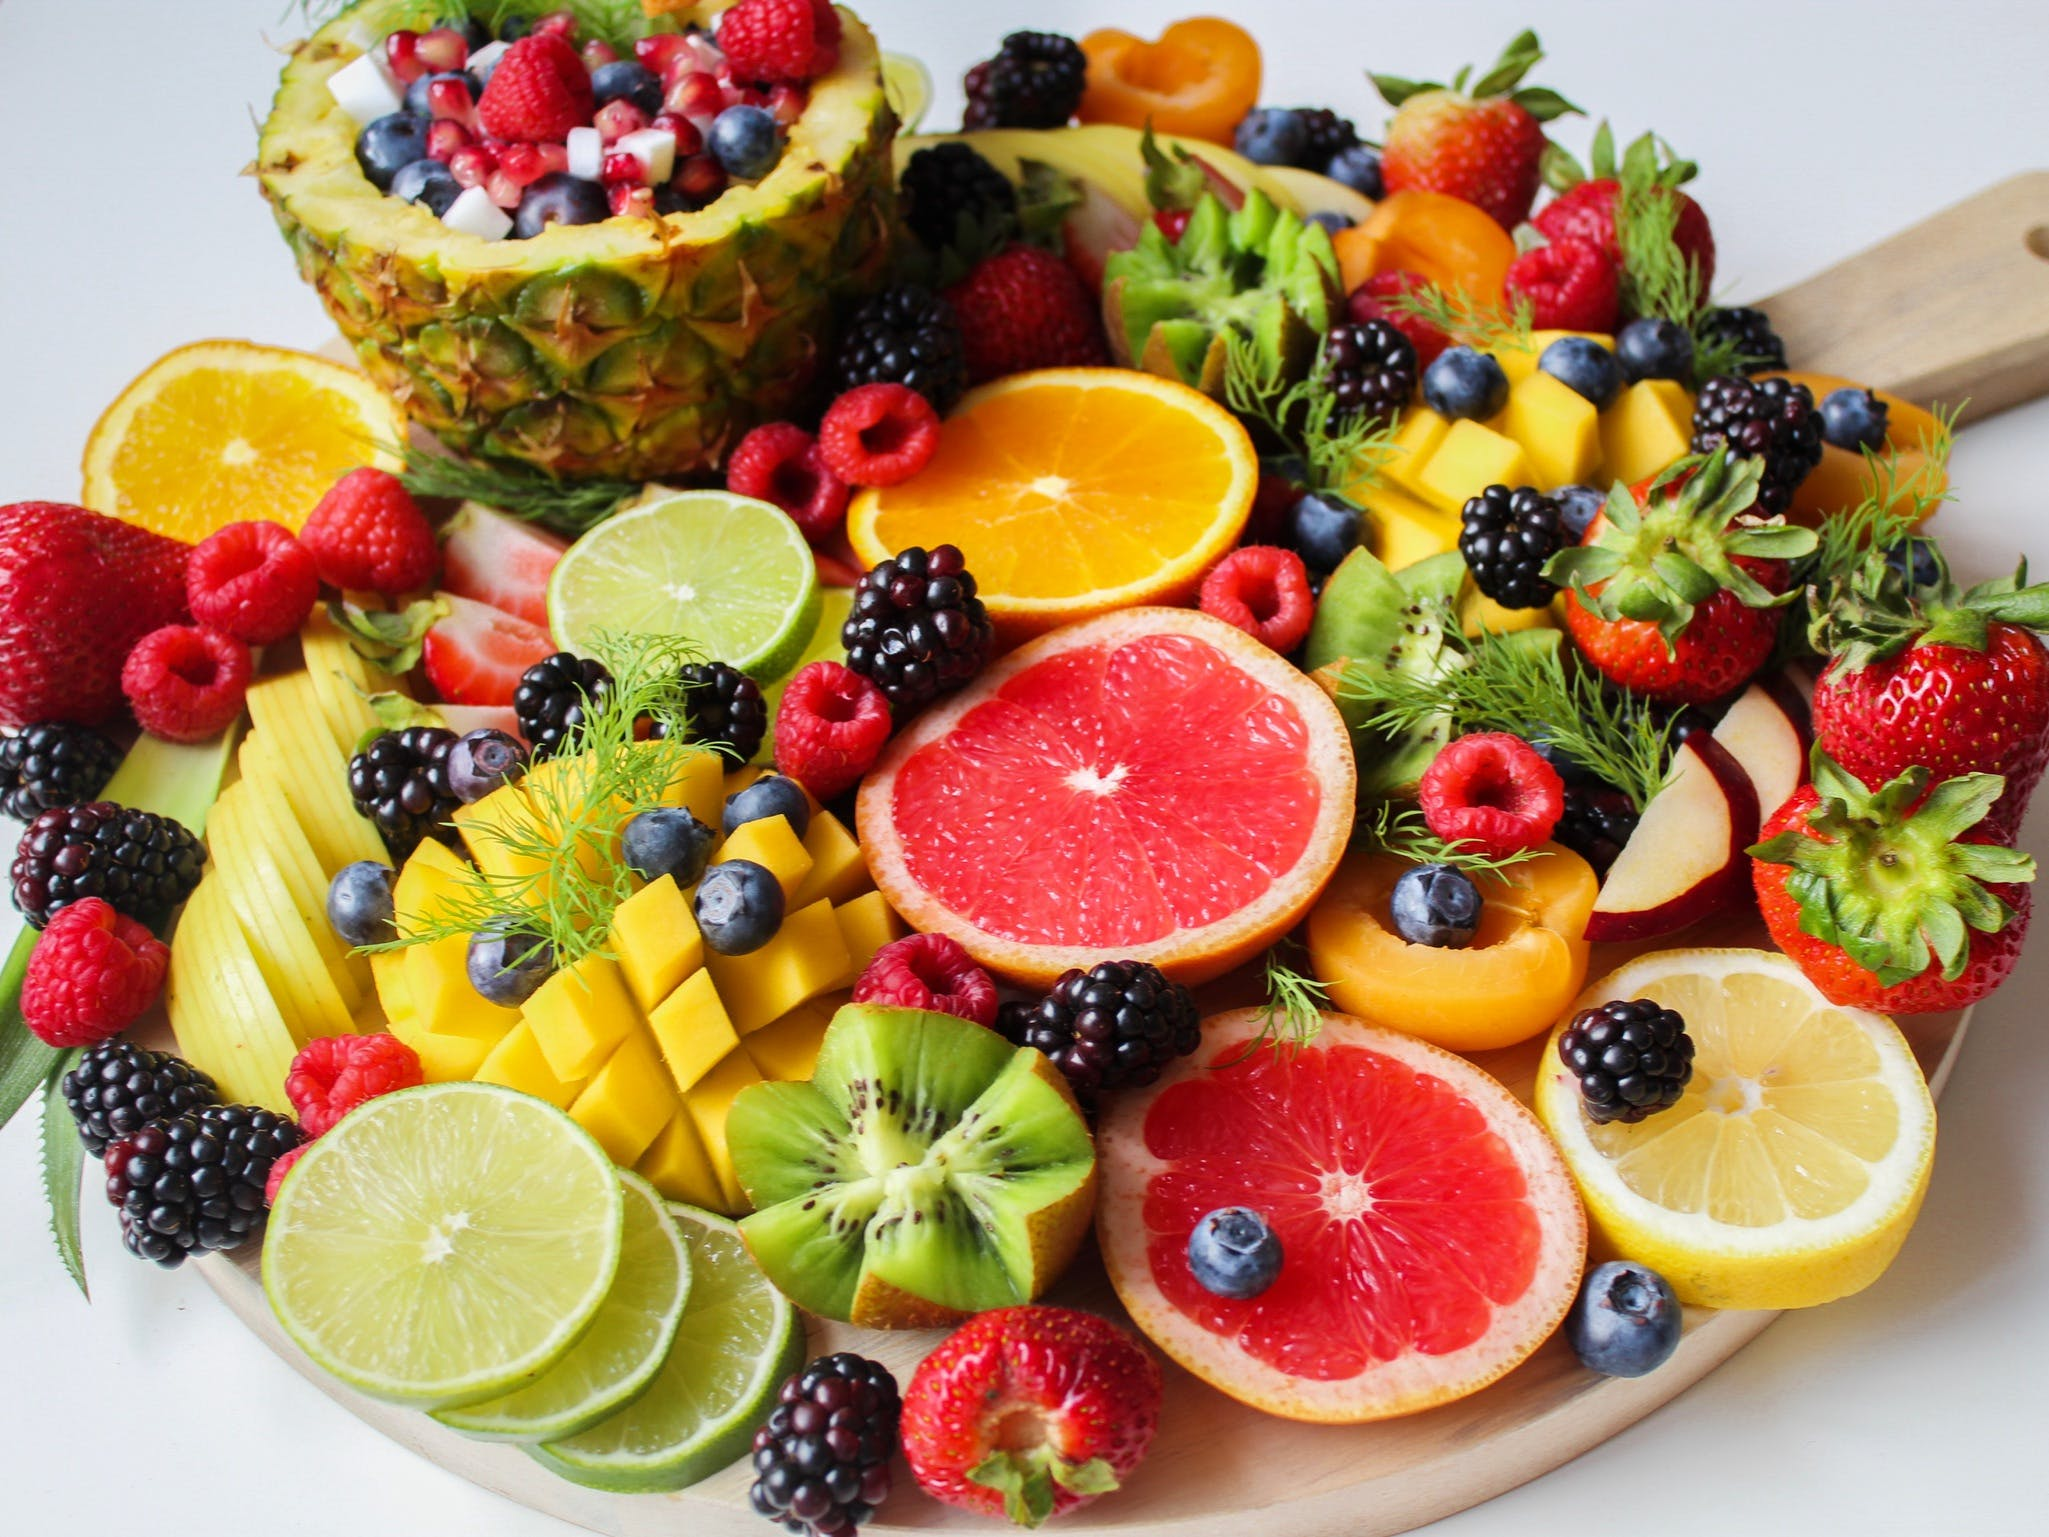 Sliced Fruits on Tray